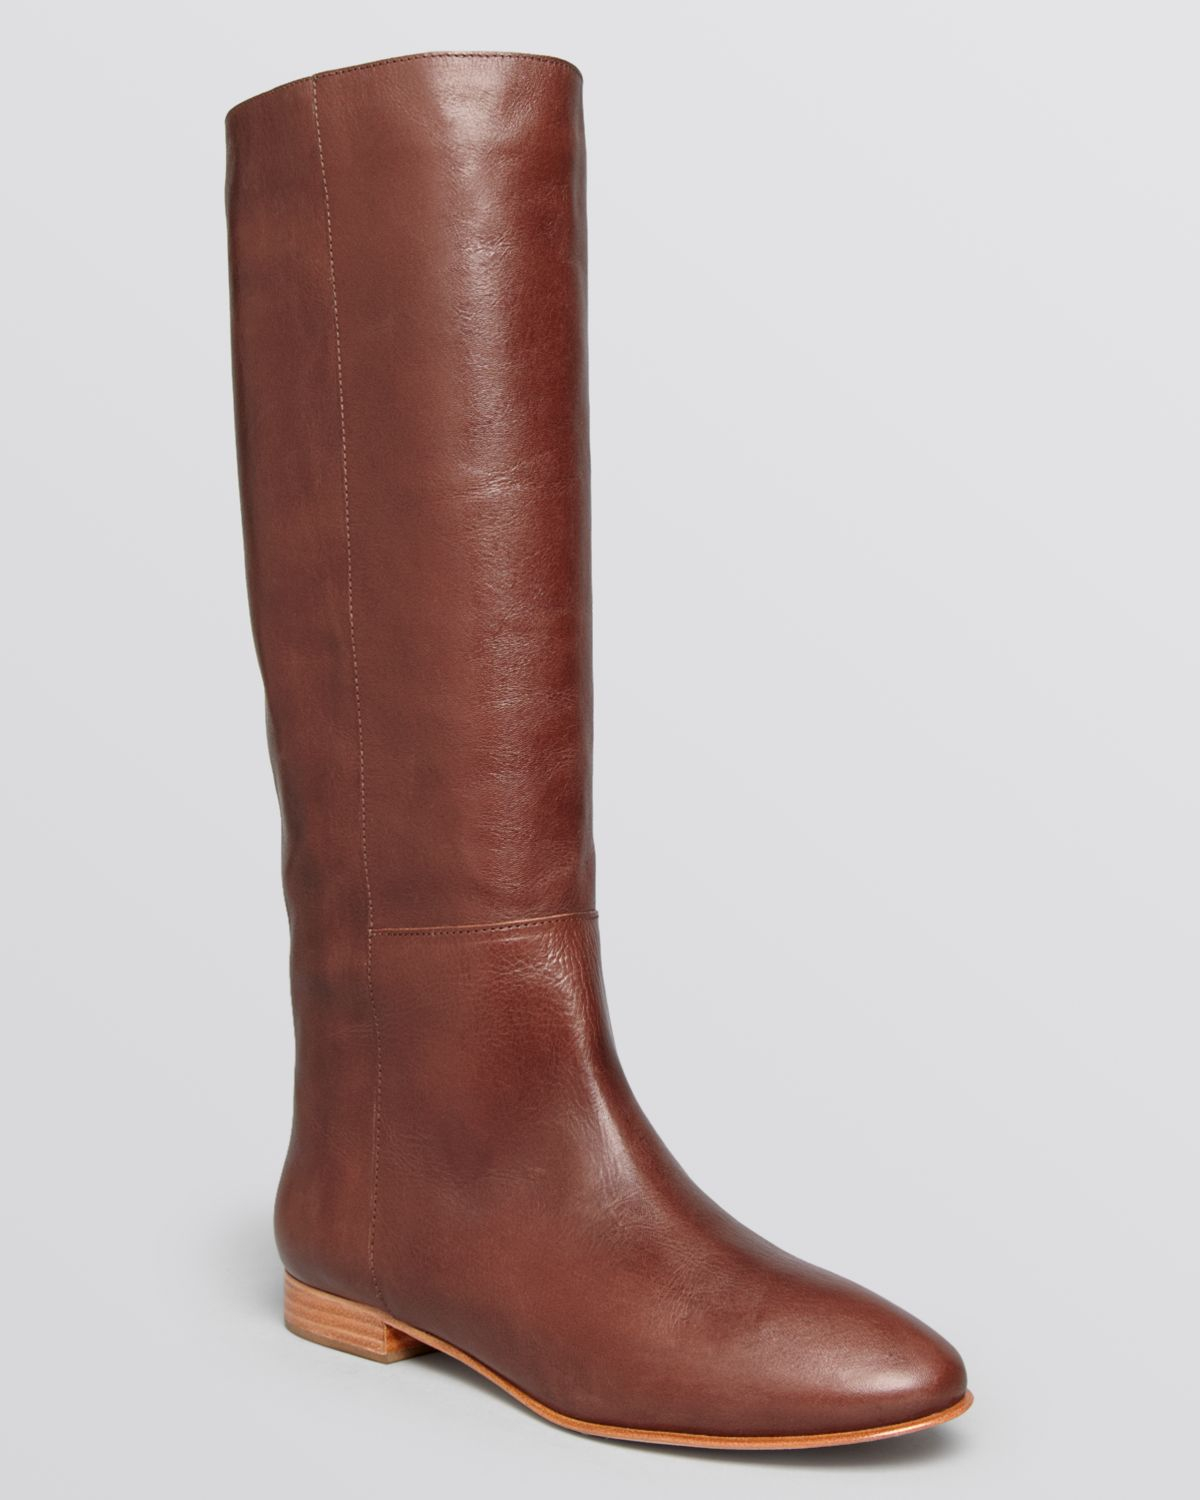 Loeffler randall Tall Flat Riding Boots - Marit in Brown | Lyst